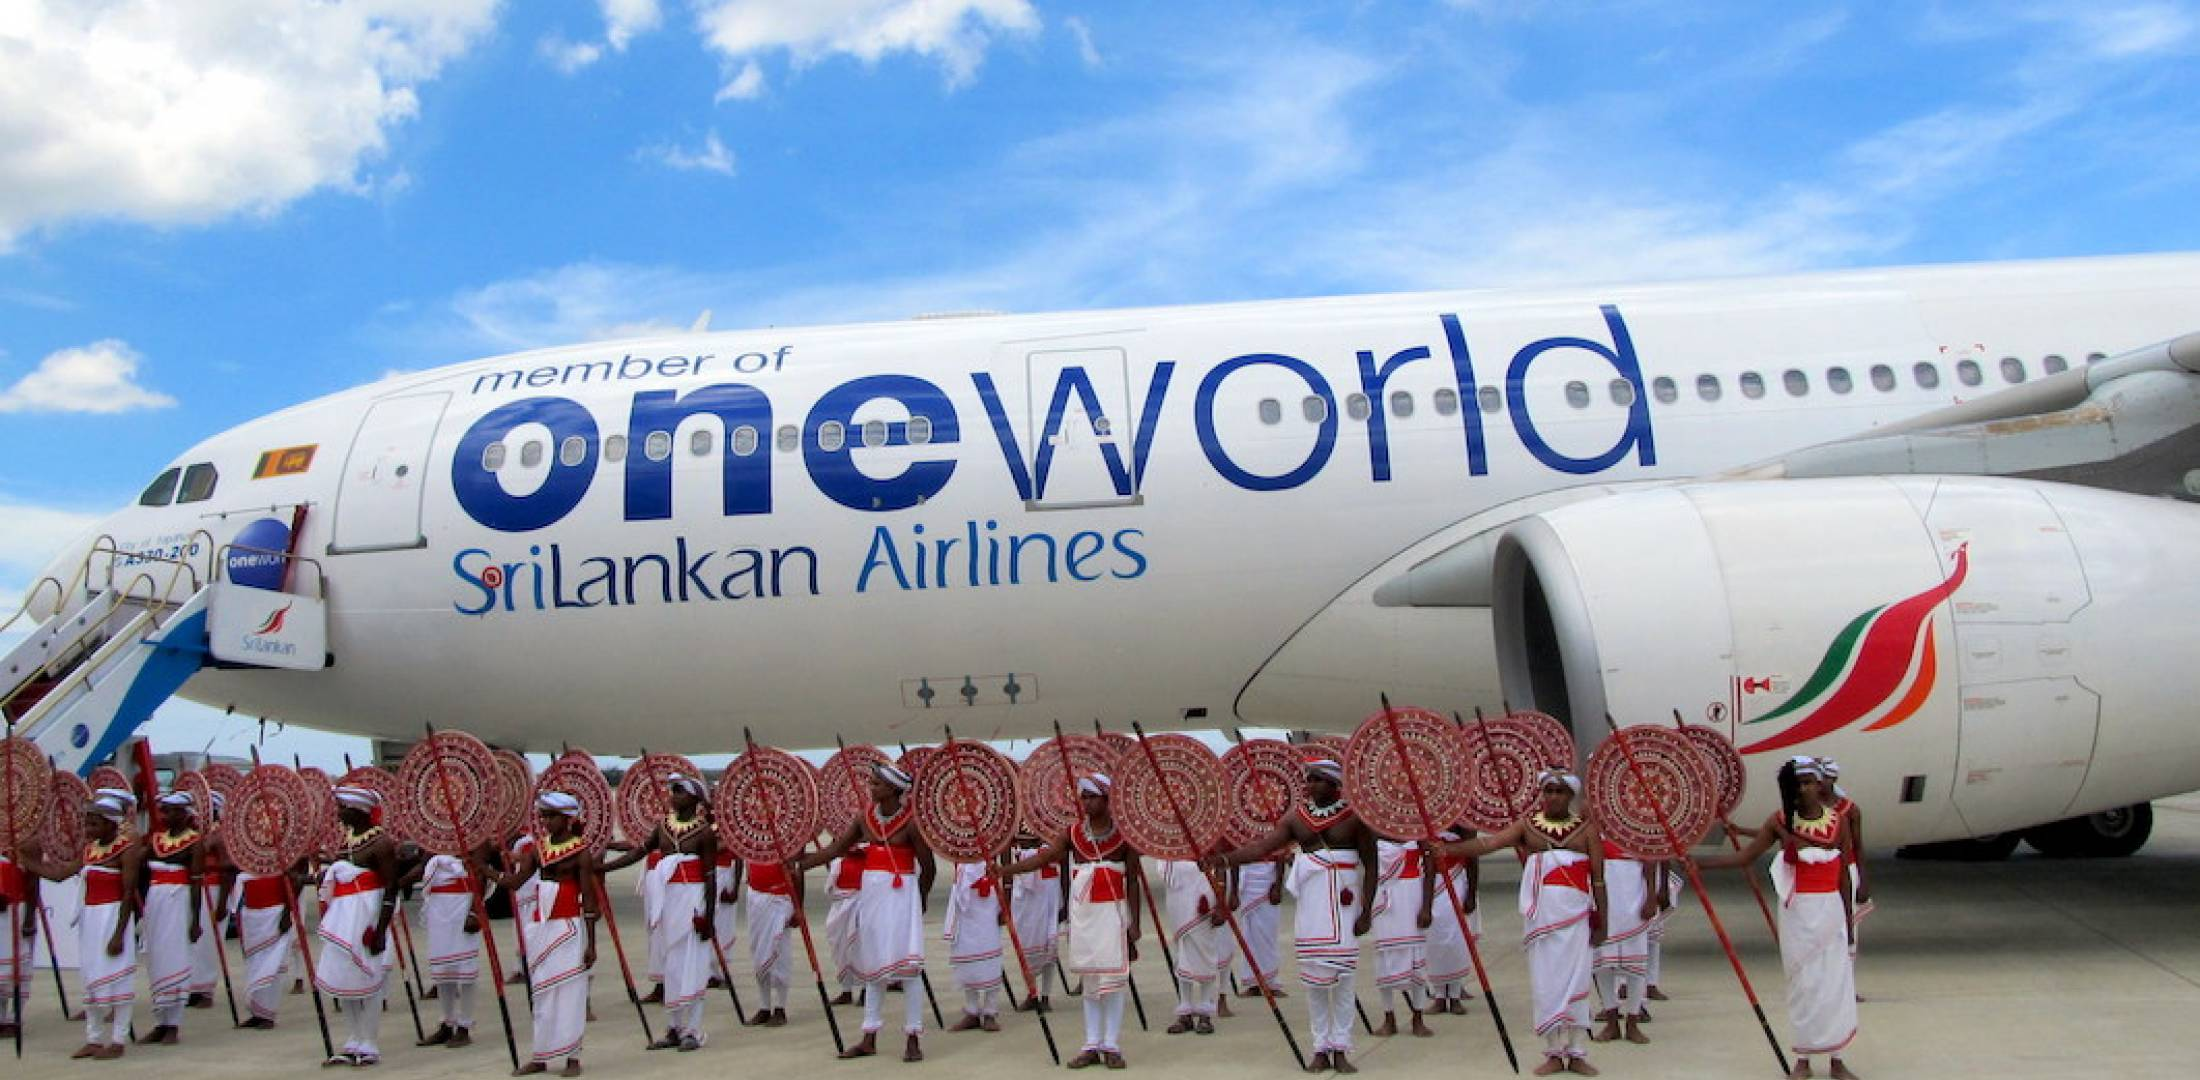 Ailing Srilankan Airlines Looks For Boost From Qatar Air Transport